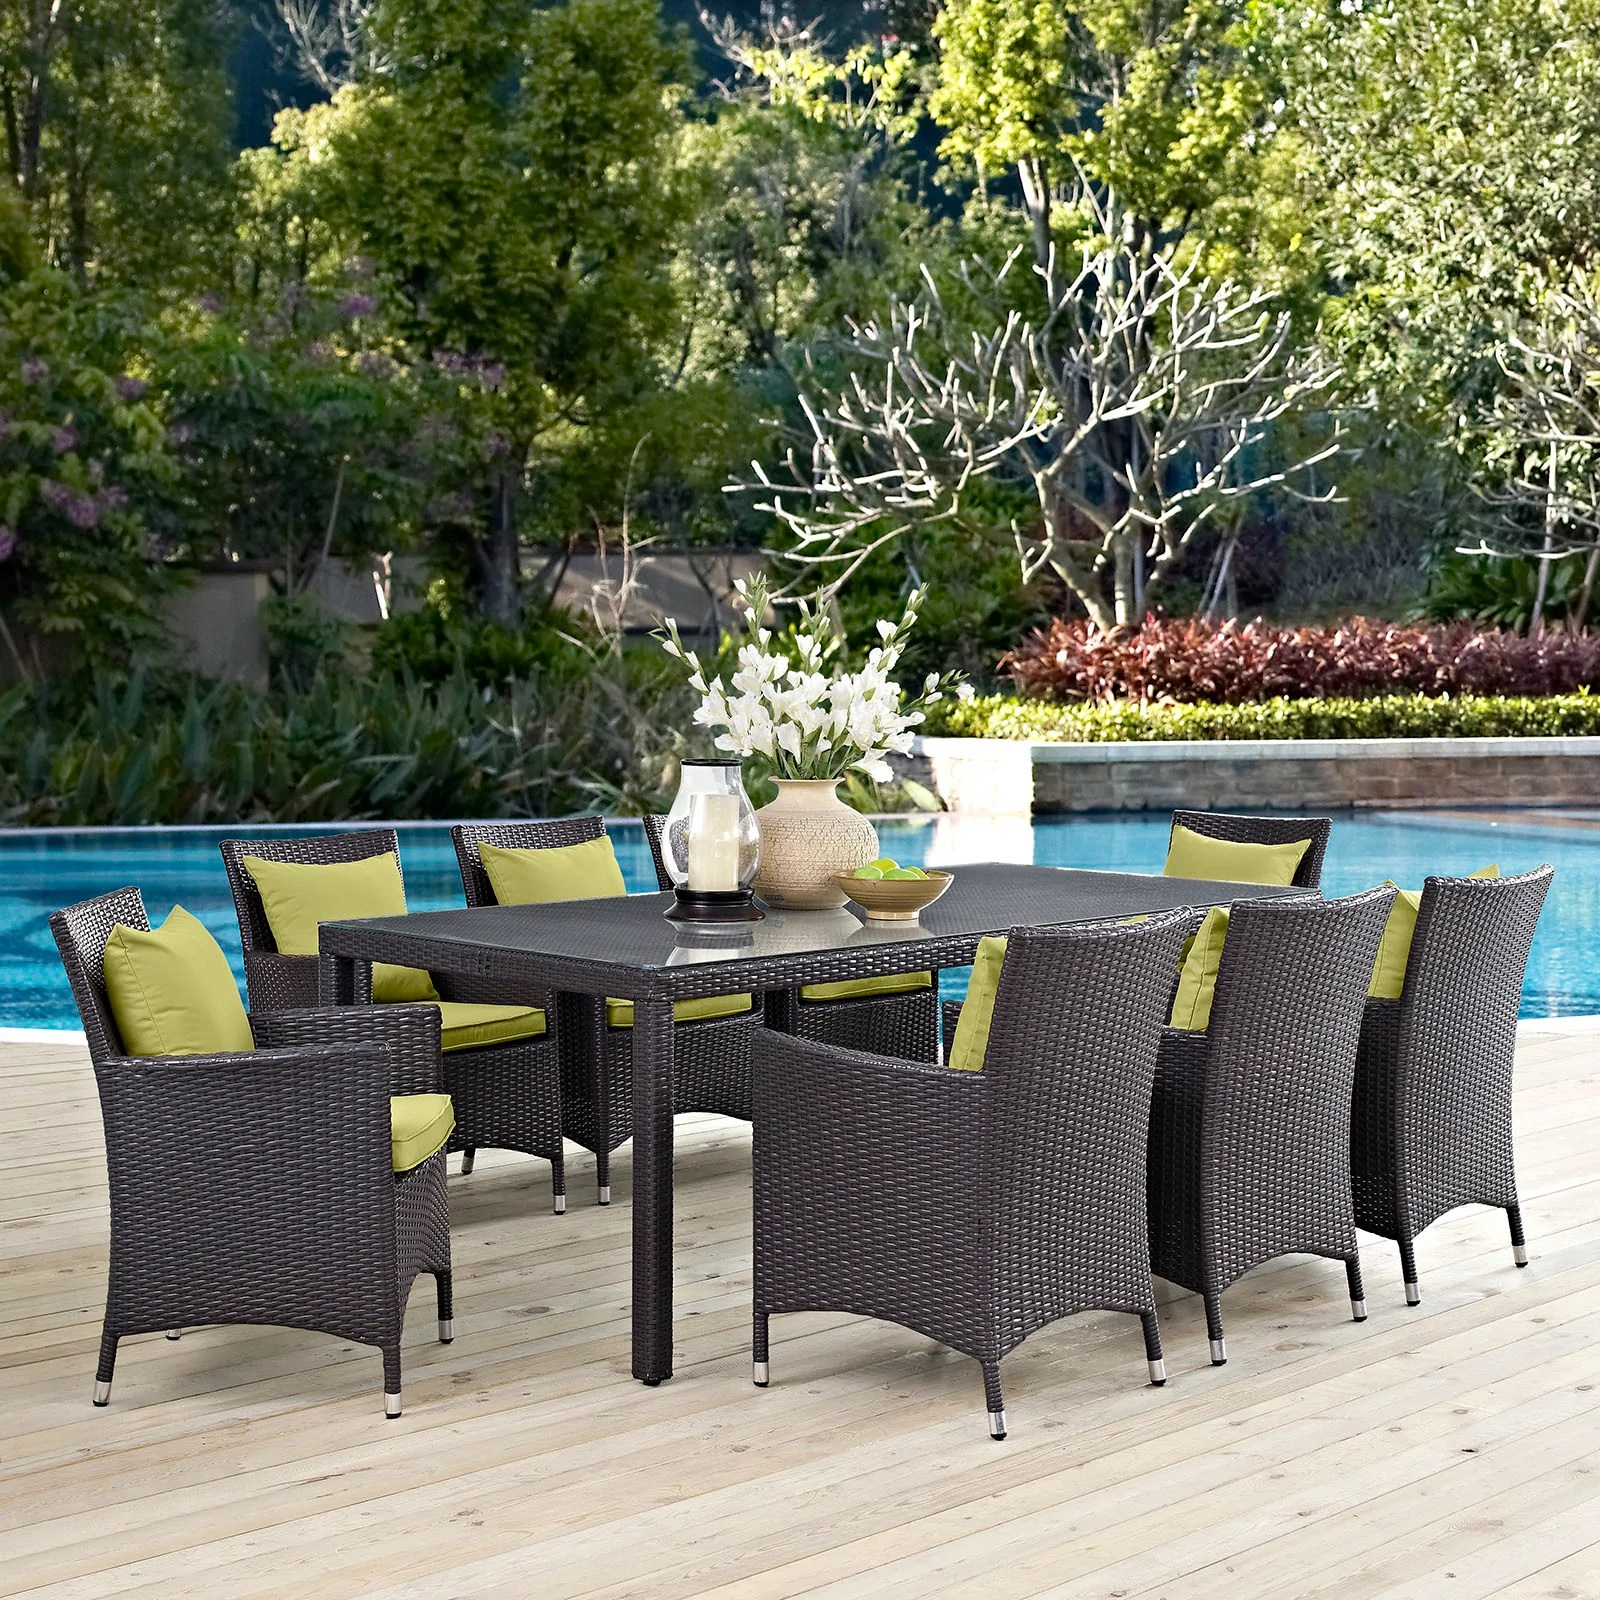 9 Piece Outdoor Dining Set Modway Convene 9 Piece Outdoor Patio Dining Set Eei 2217